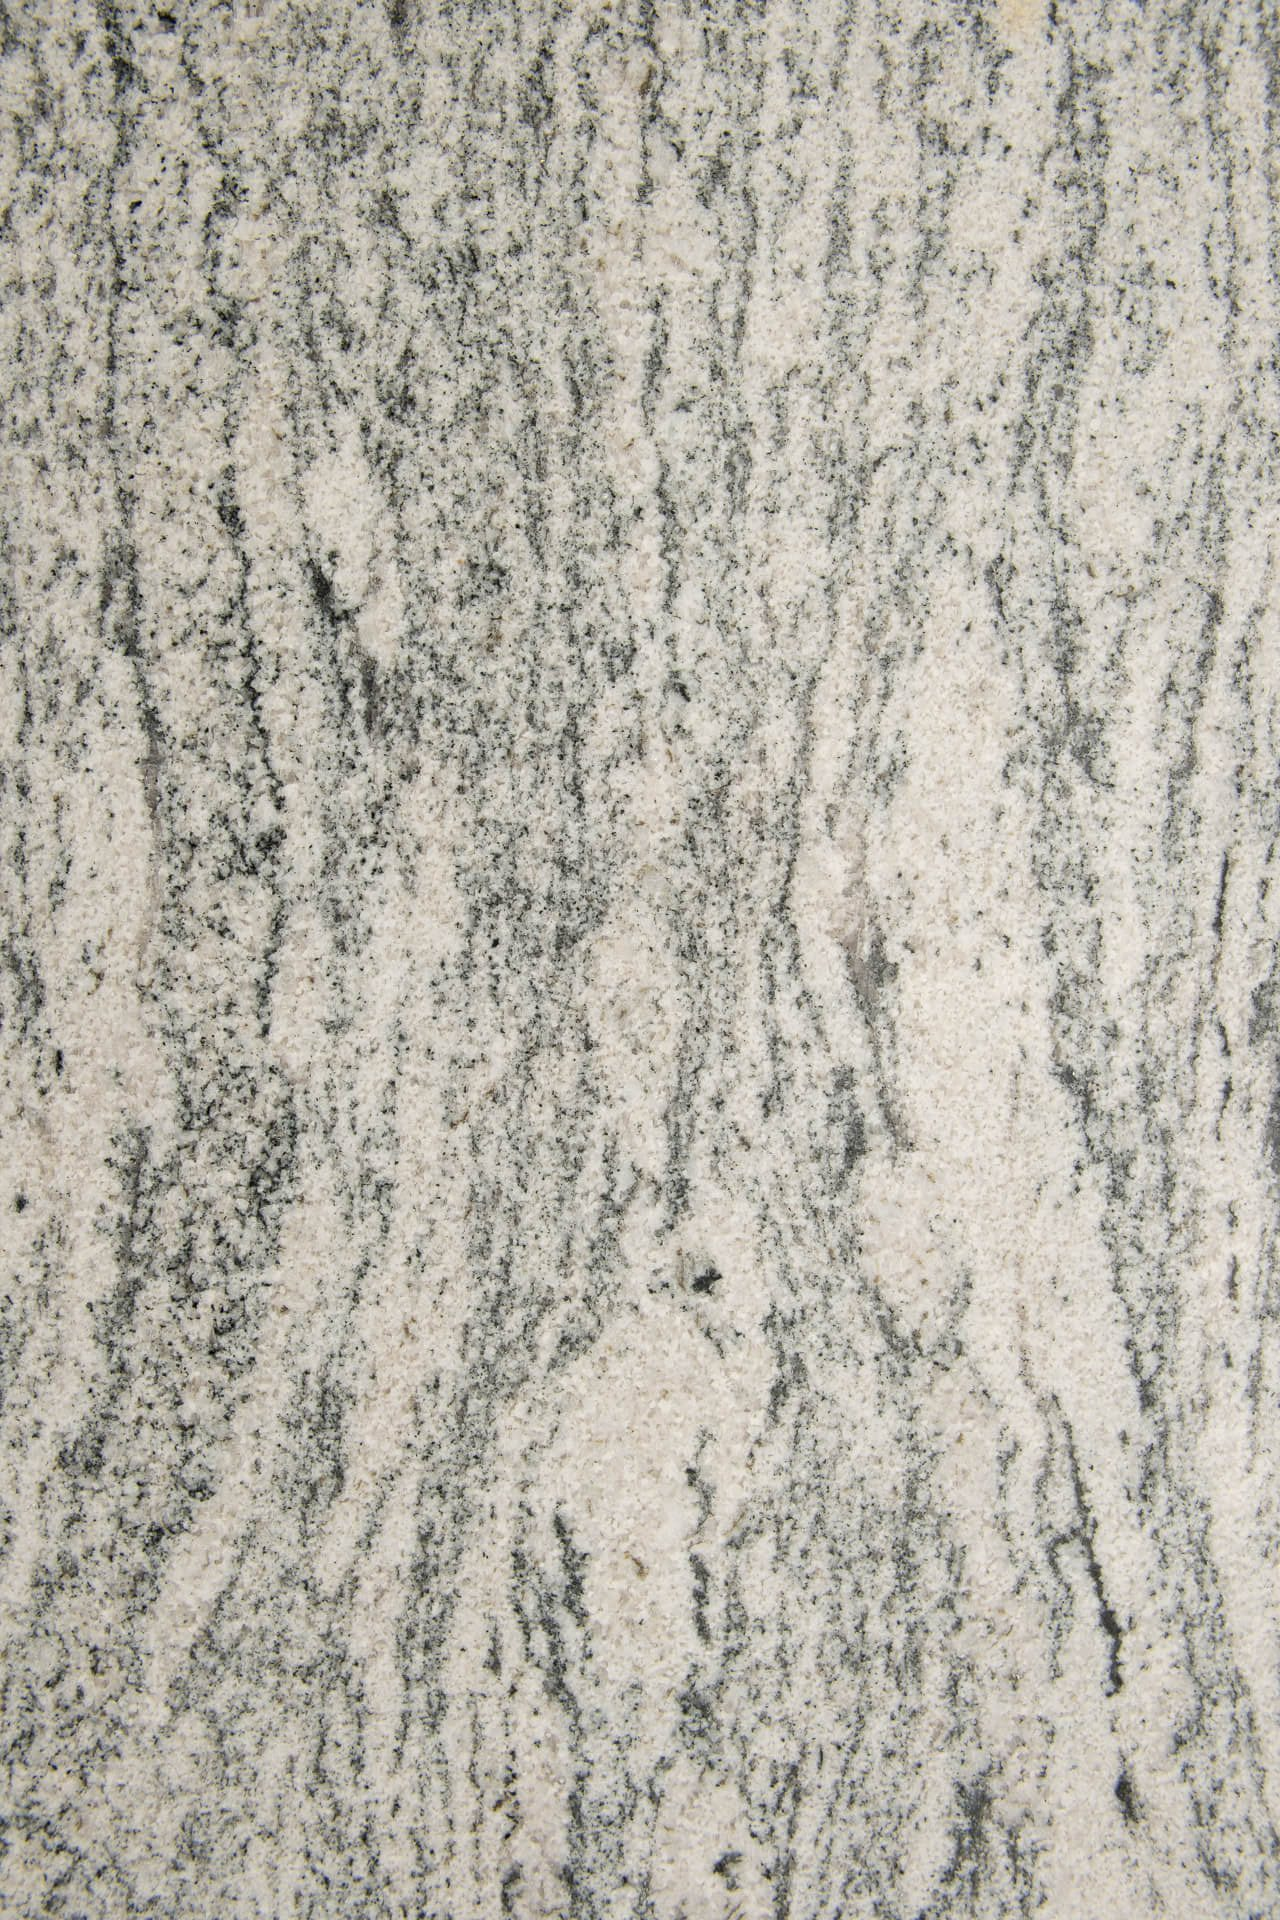 viscount white 2 cu countertop - by Magnolia Countertops. A Countertop fabricator of Granite Countertops, Marble Countertops, and Quartz Countertops in Cookeville and Crossville TN.